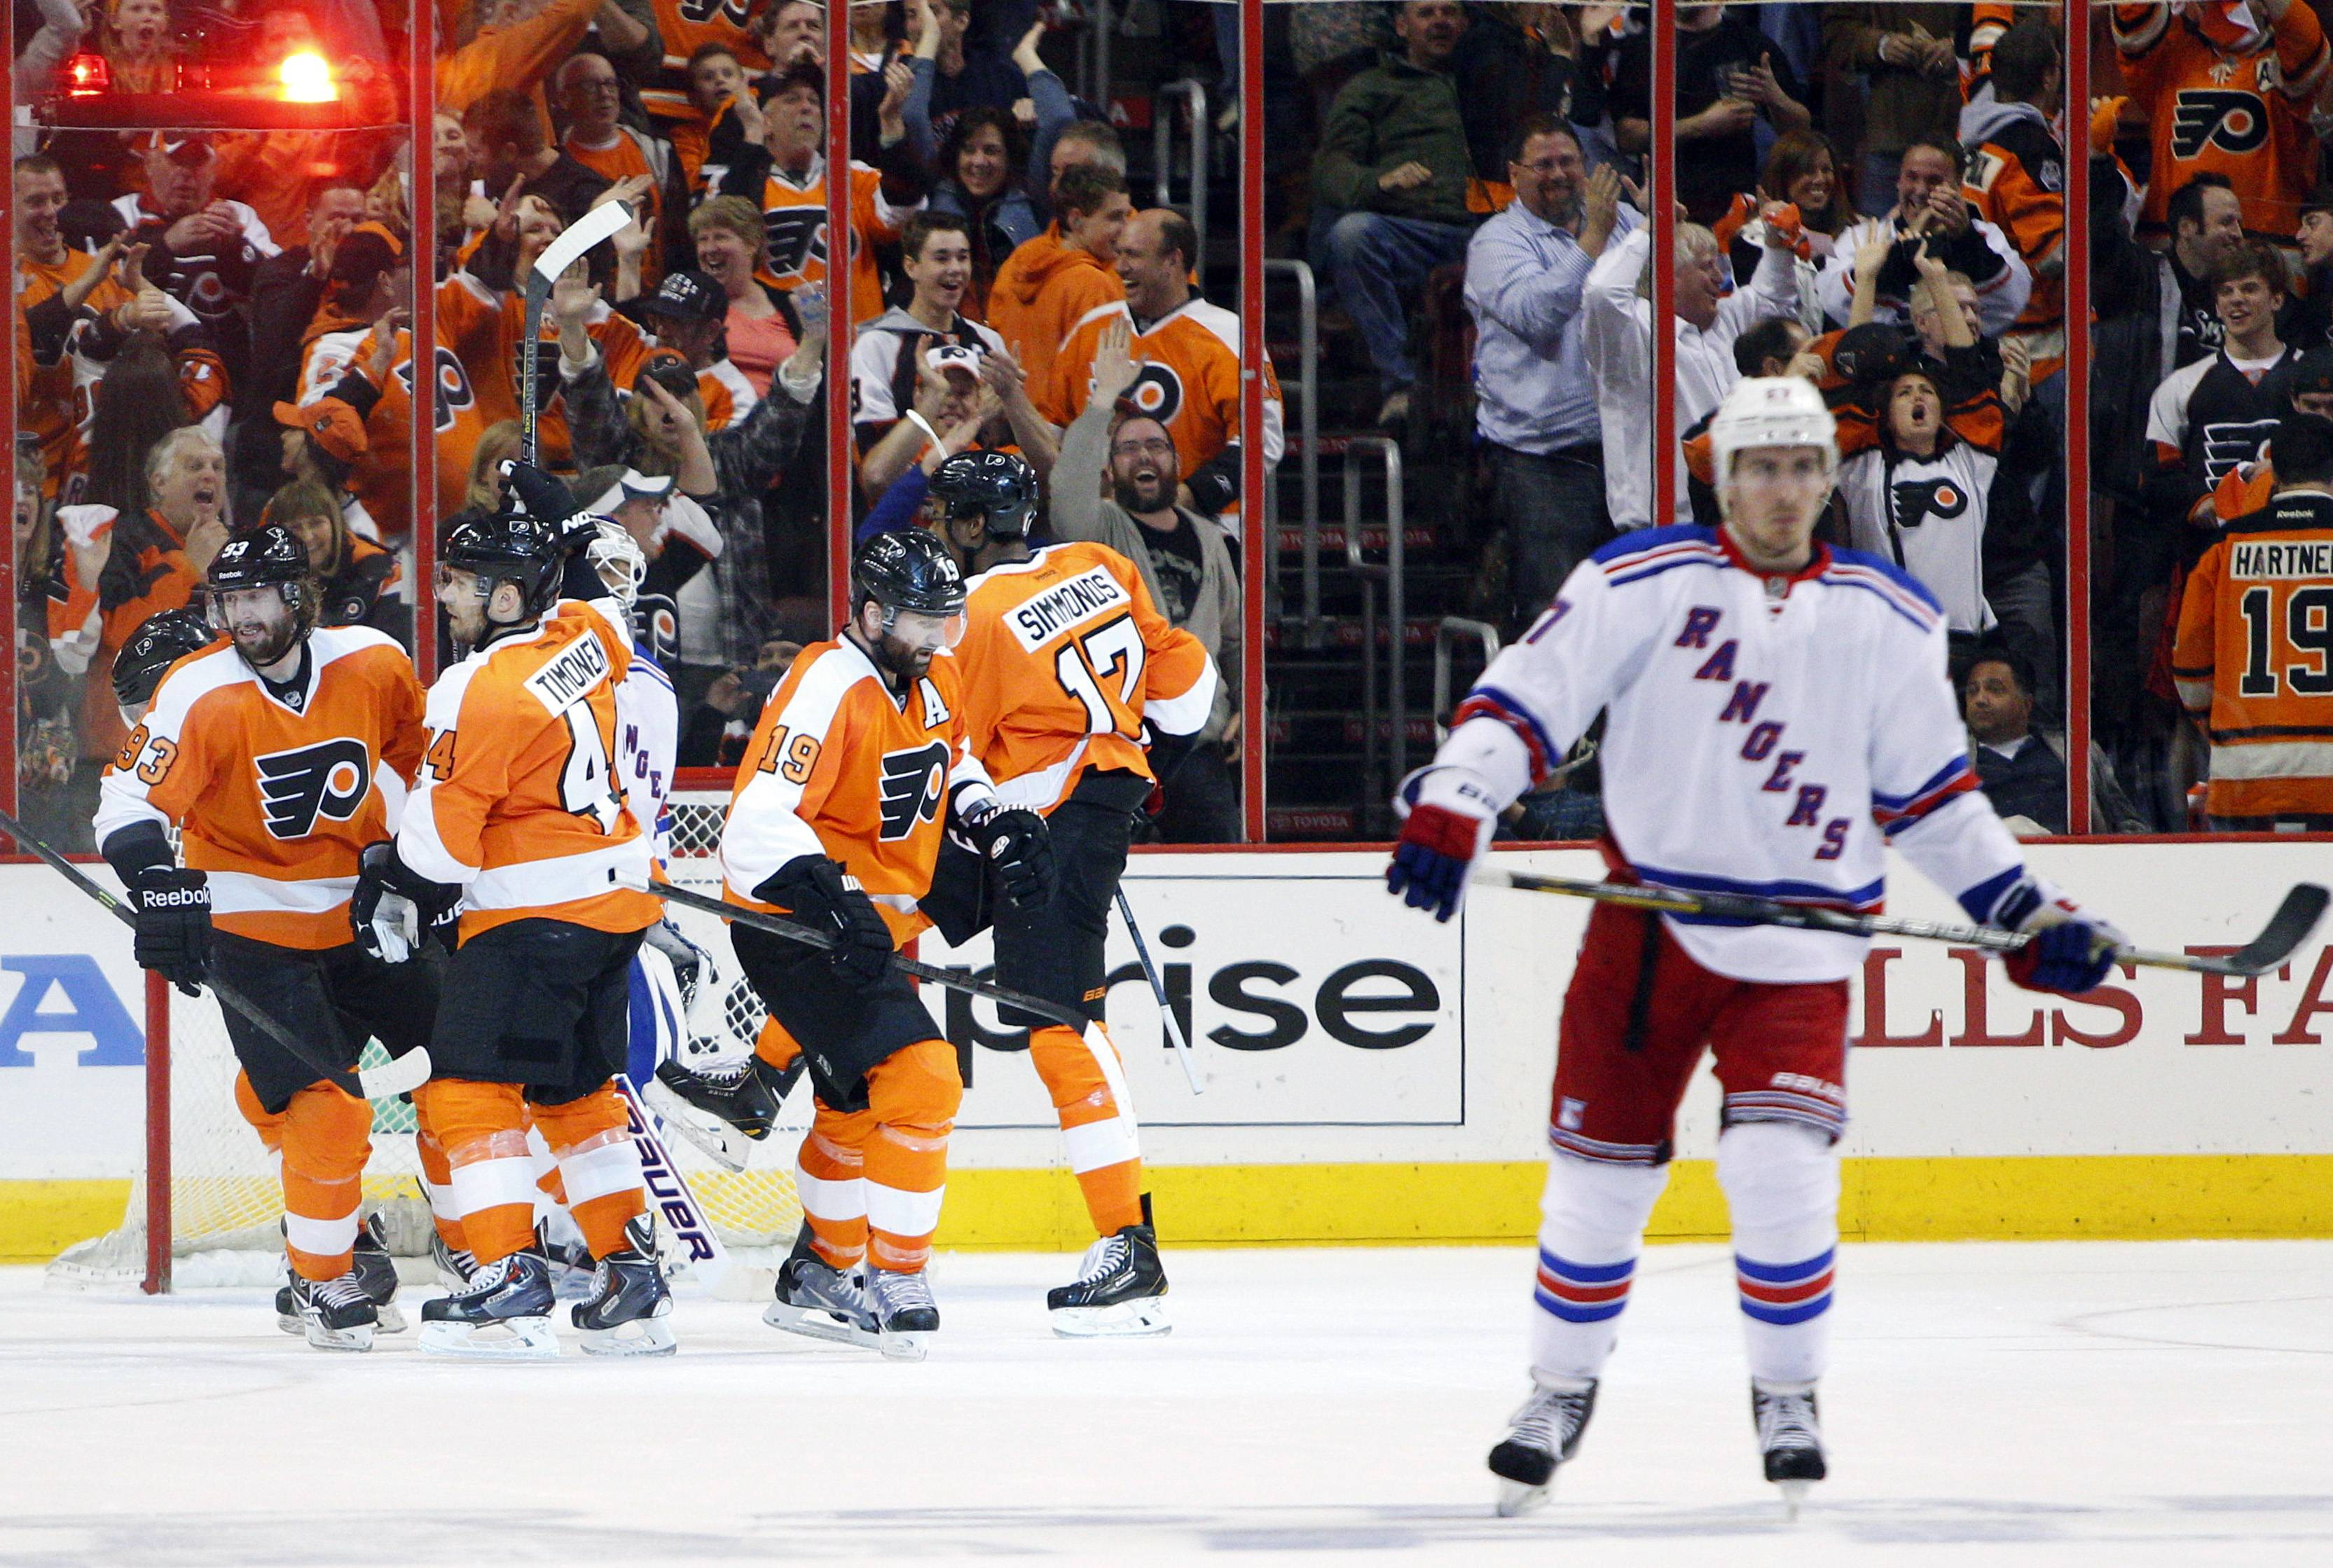 Philadelphia Flyers' Wayne Simmonds, second from right, celebrates his hat trick with teammates during the second period in Game 6 of an NHL hockey first-round playoff series Tuesday against the New York Rangers in Philadelphia.